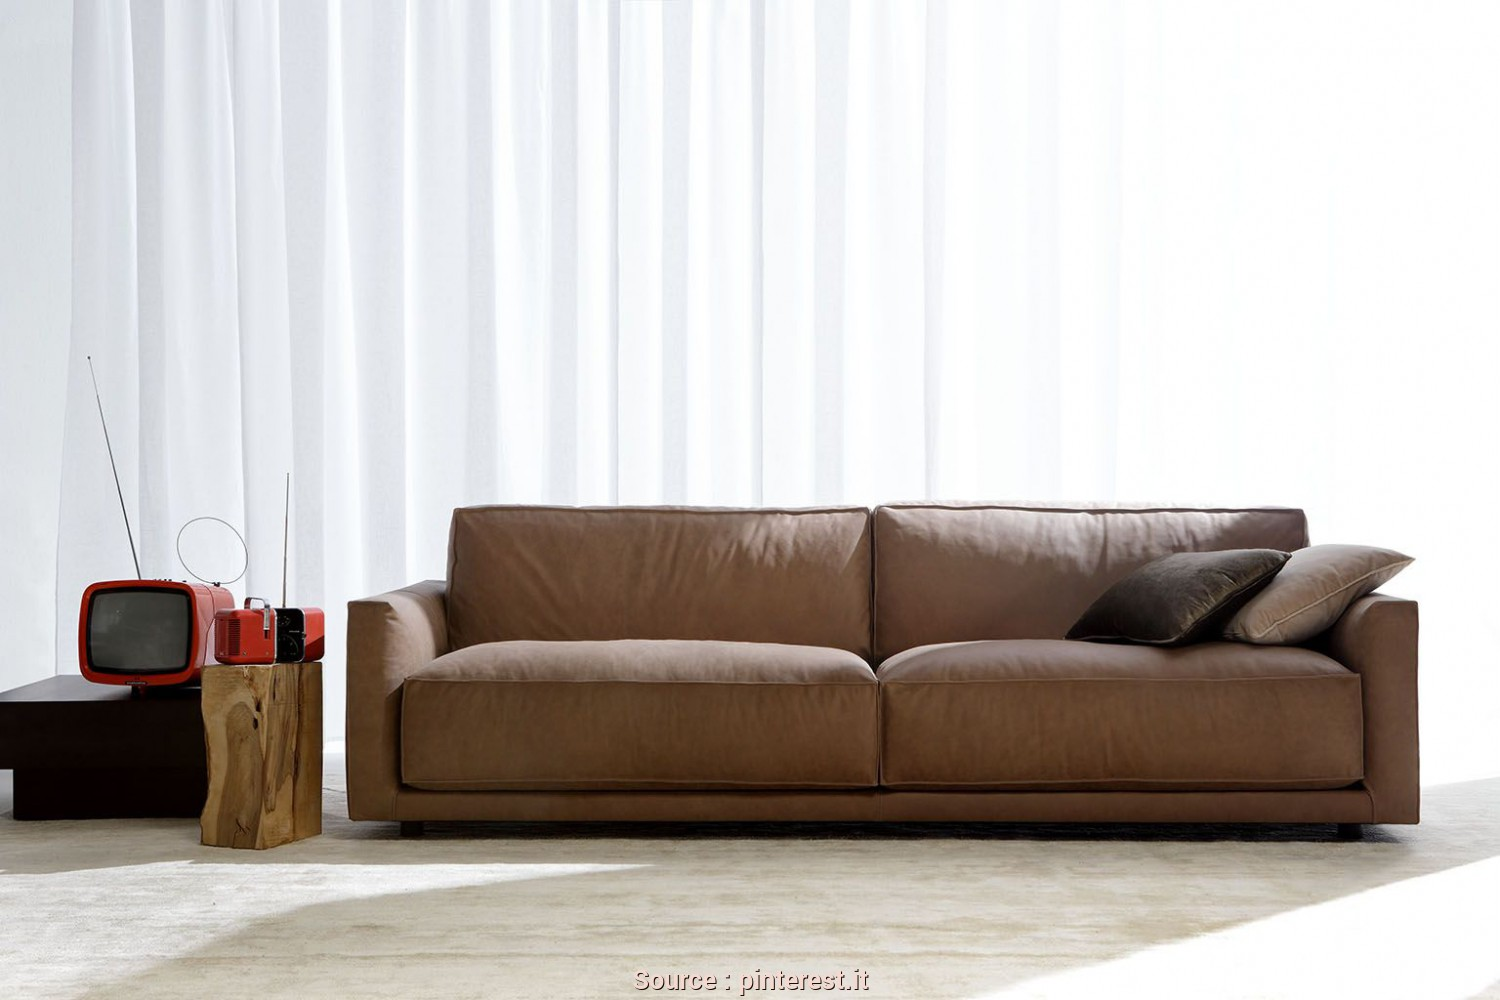 Divano Pelle Marrone Moderno, Eccezionale Ribot Sofa By Berto. Modern Leather Sofa Made In Italy. Pelle Marrone, Design